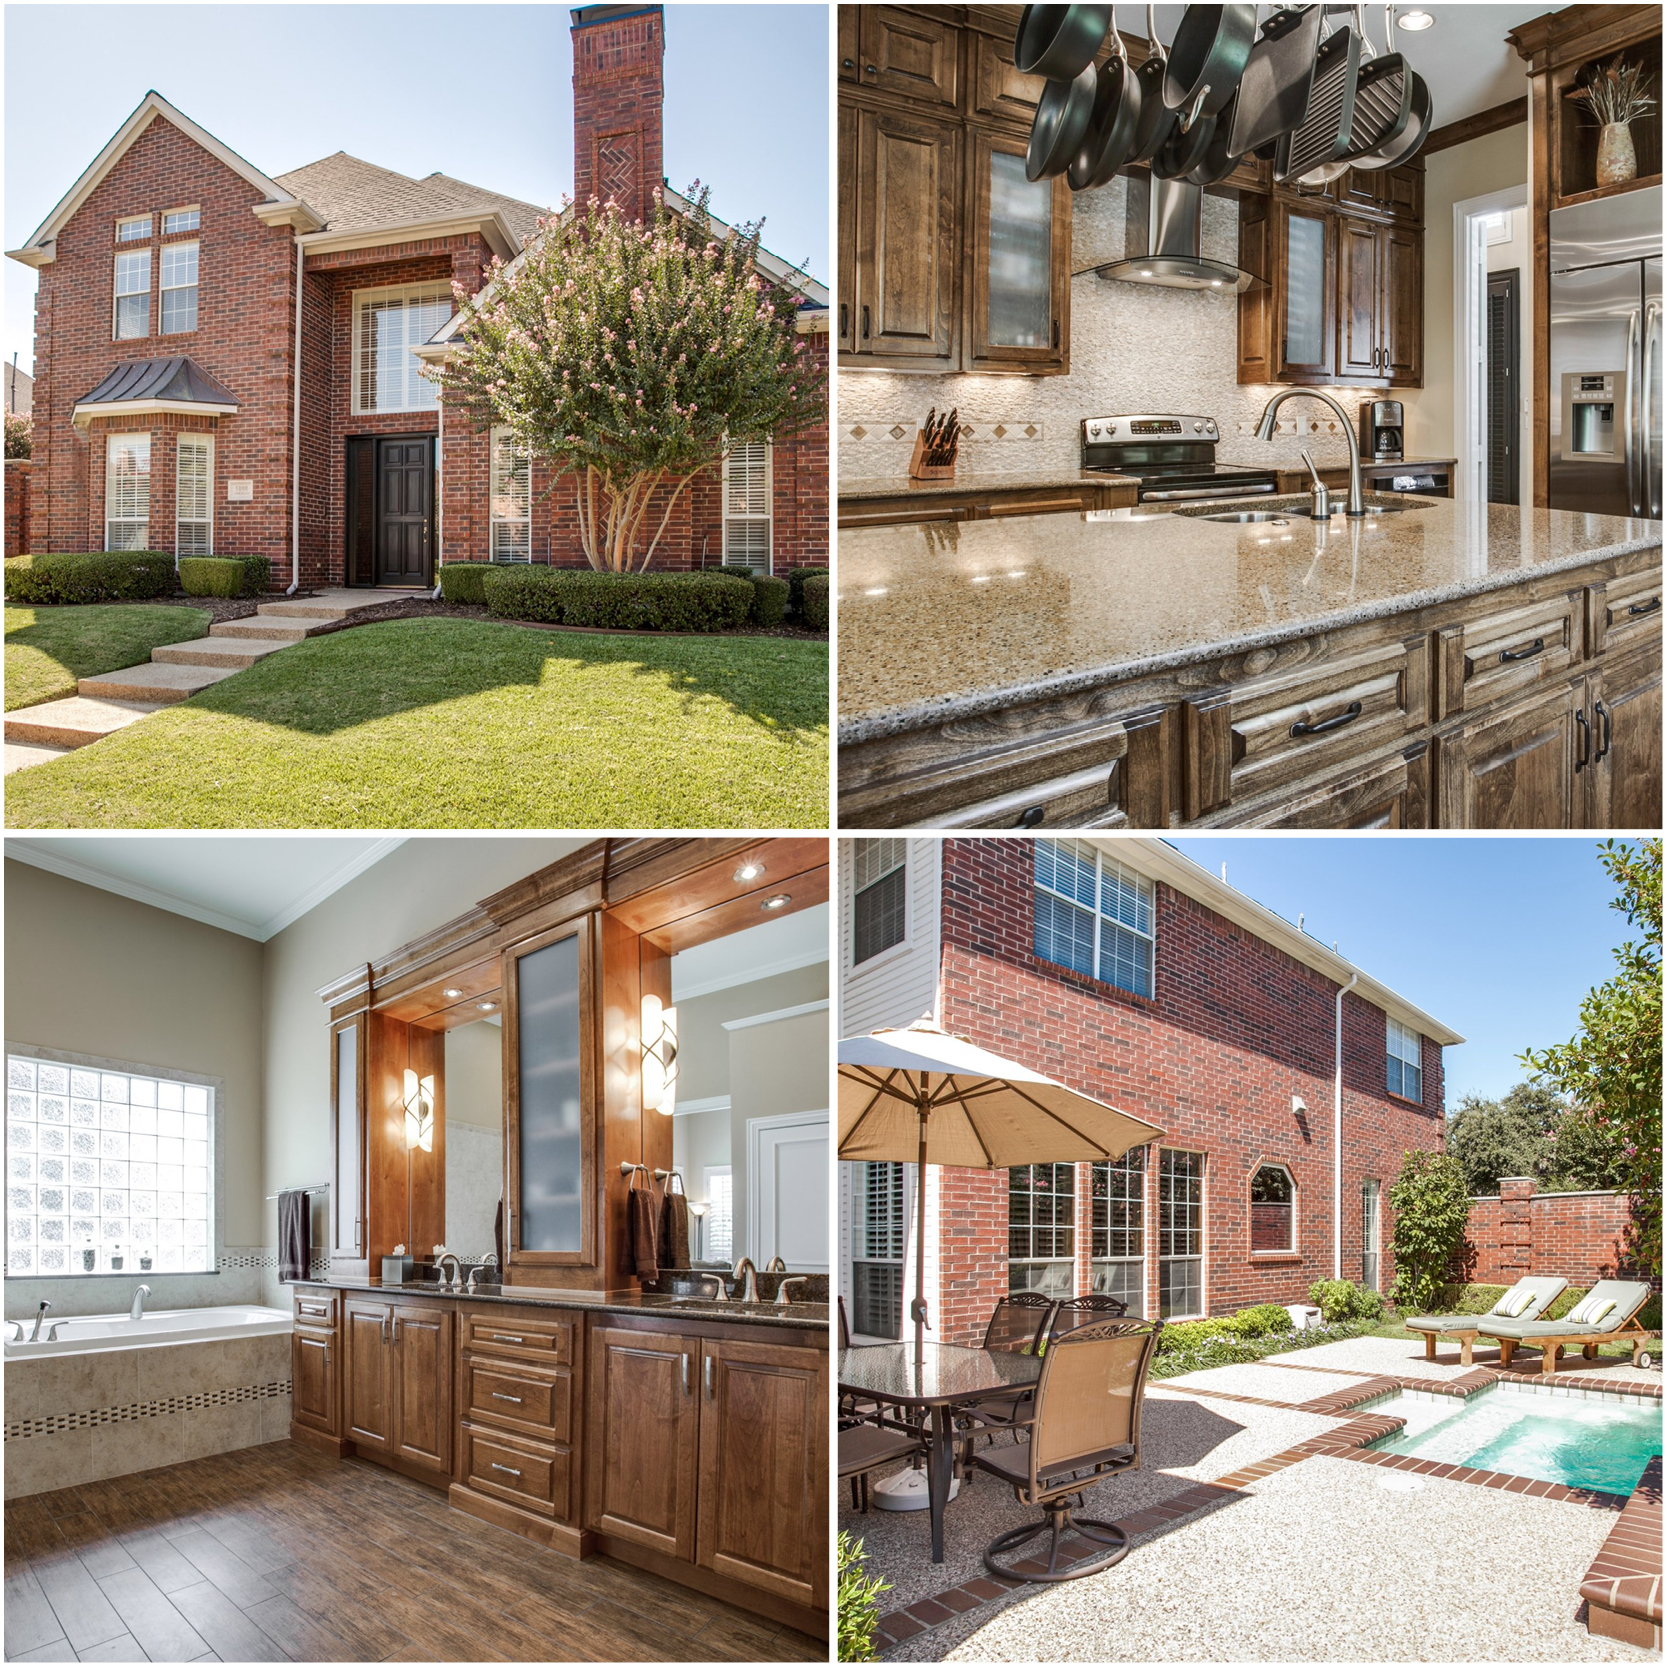 What $600k Gets You in DFW